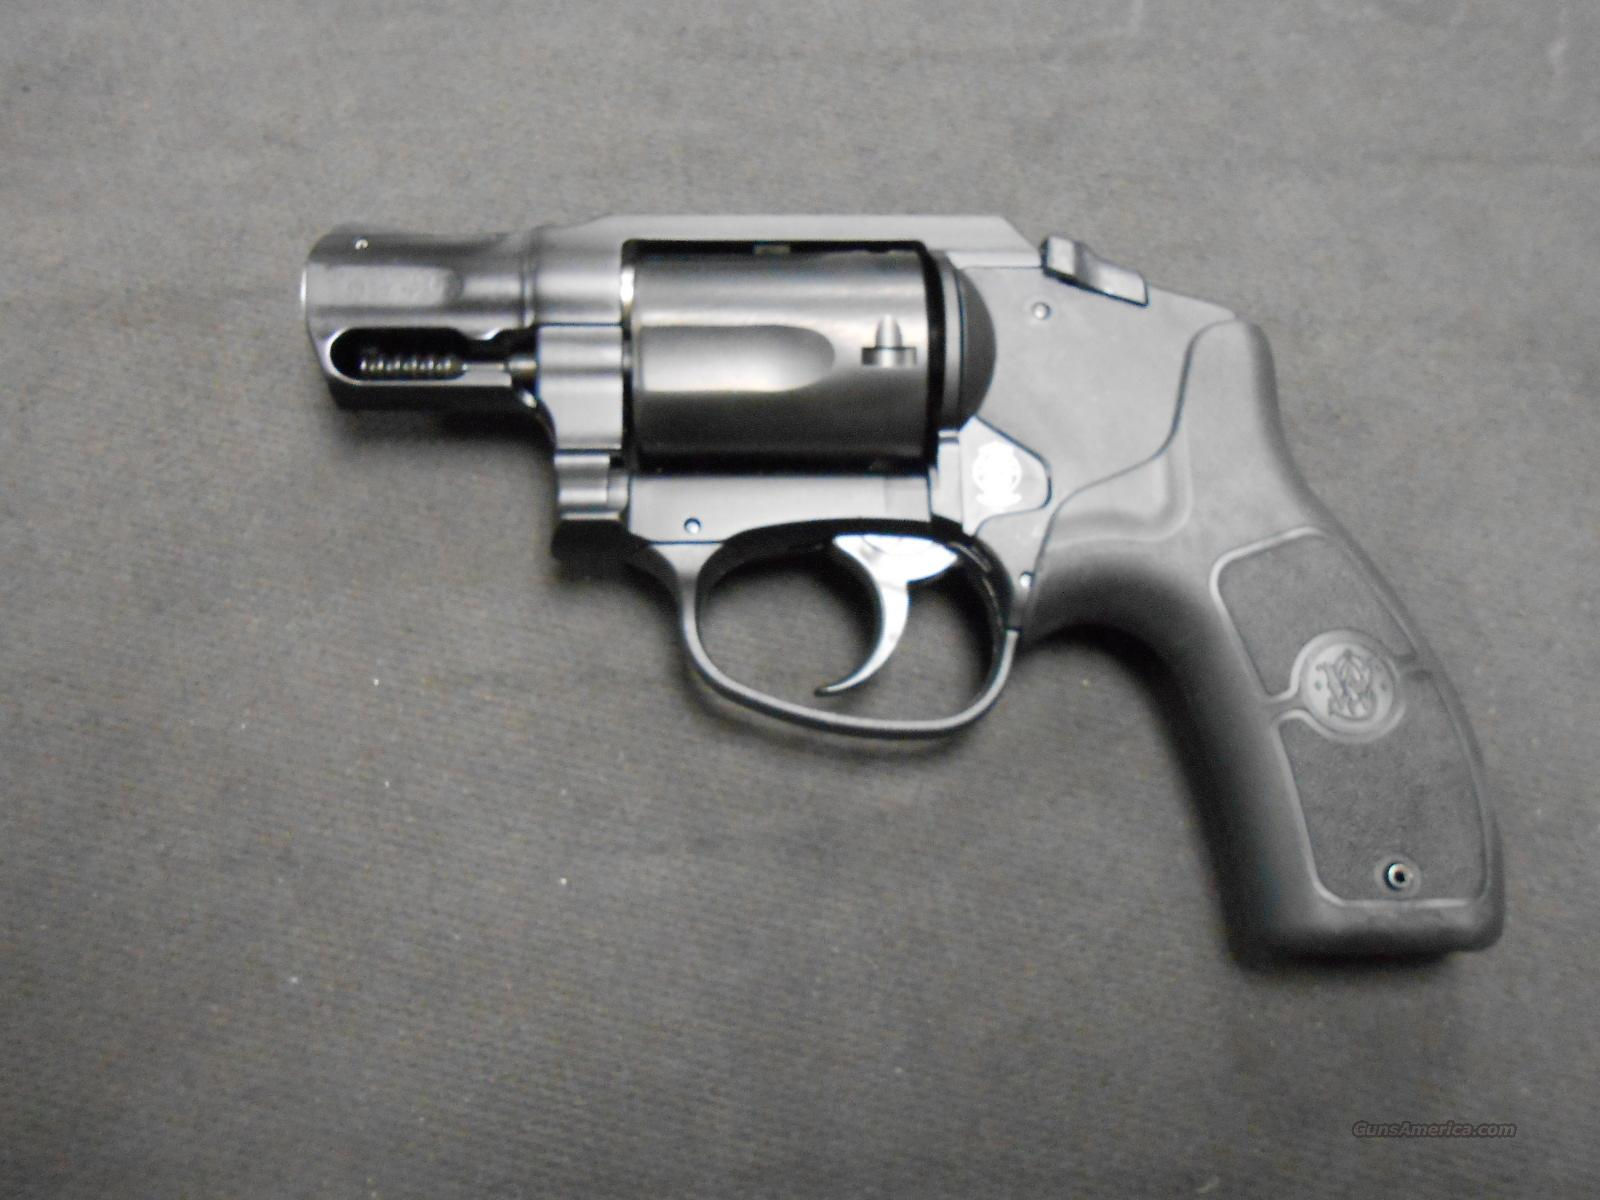 S&W Bodygaurd 38+p Insight Laser 103038 NIB!  Guns > Pistols > Smith & Wesson Revolvers > Pocket Pistols